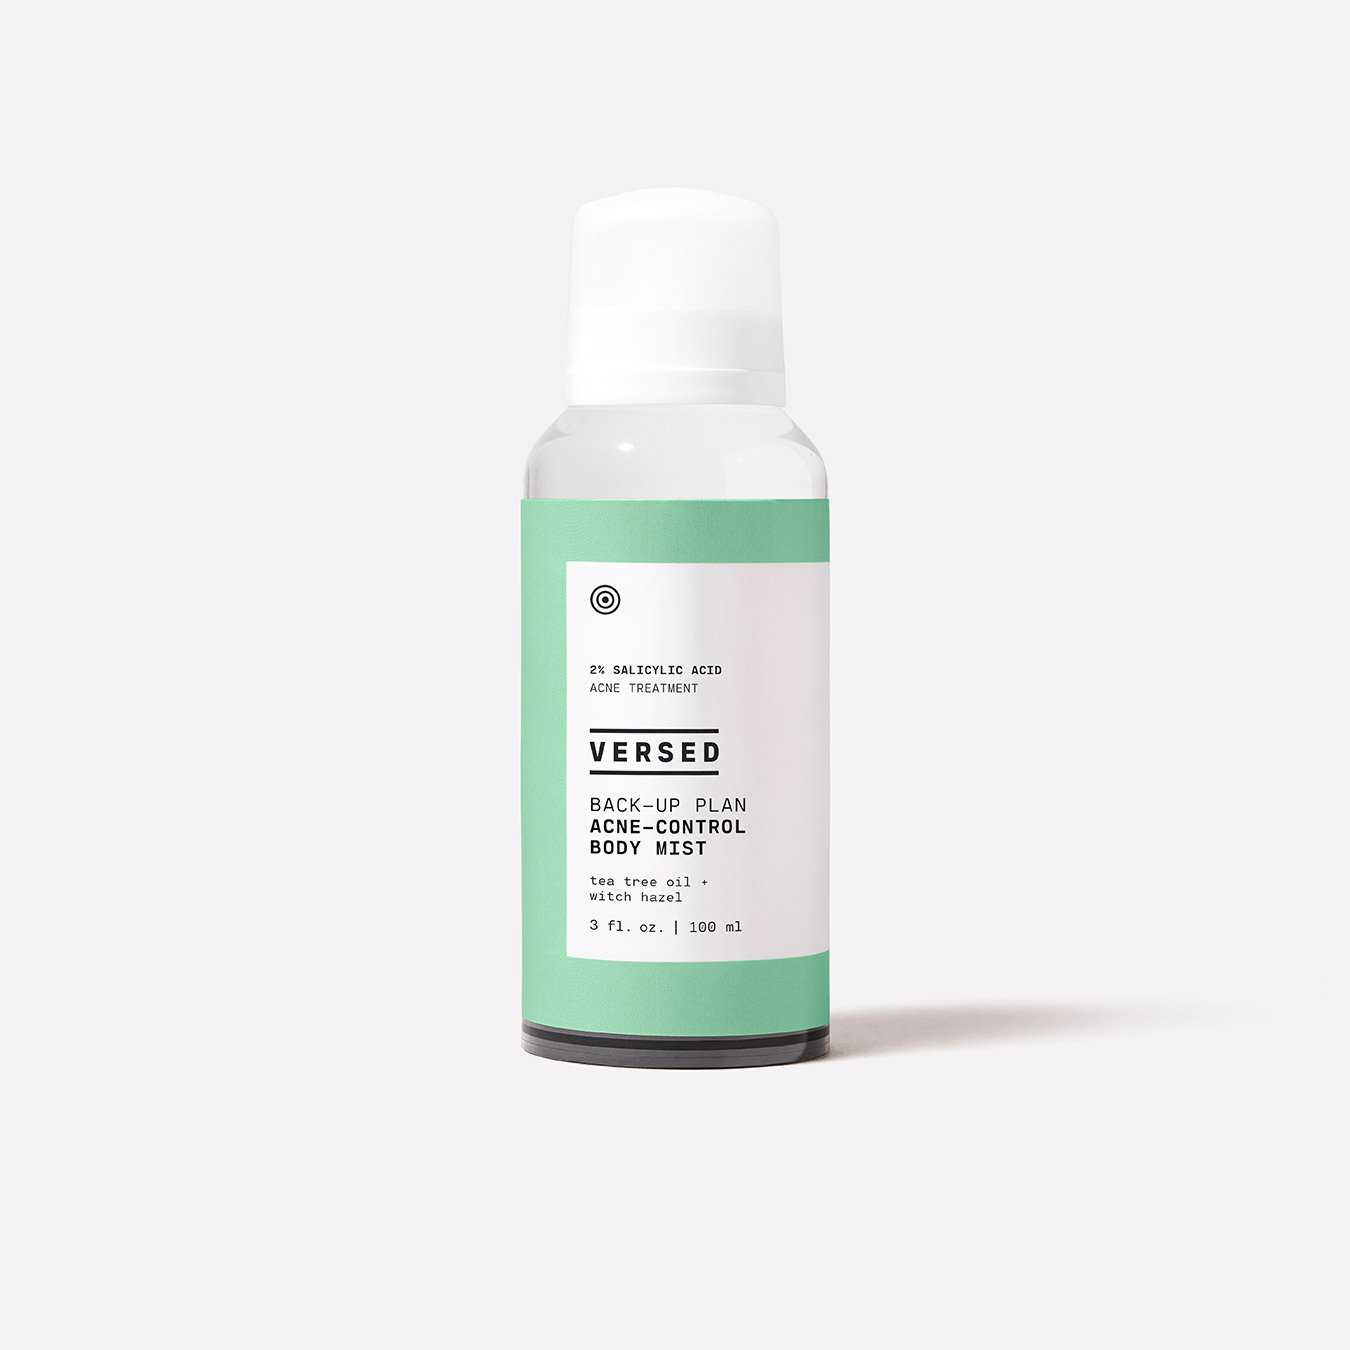 Versed-Back-Up-Plan-Acne-Control-Mist-Product